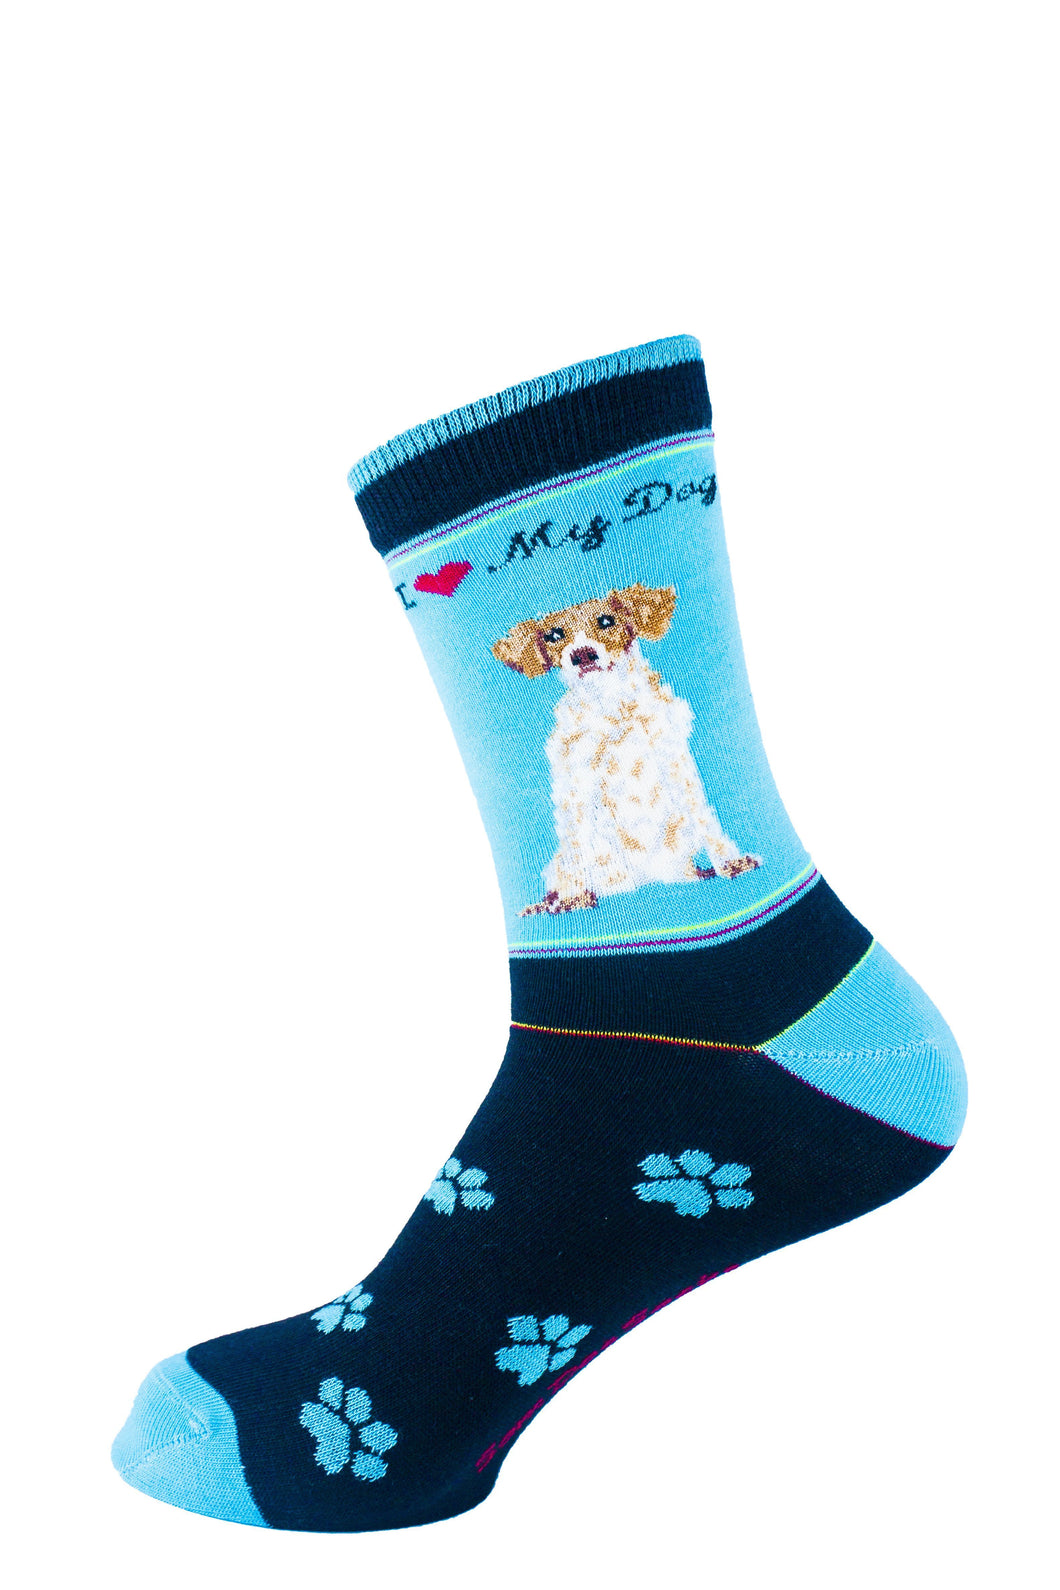 Brittany Spaniel Dog Socks Signature - samnoveltysocks.com